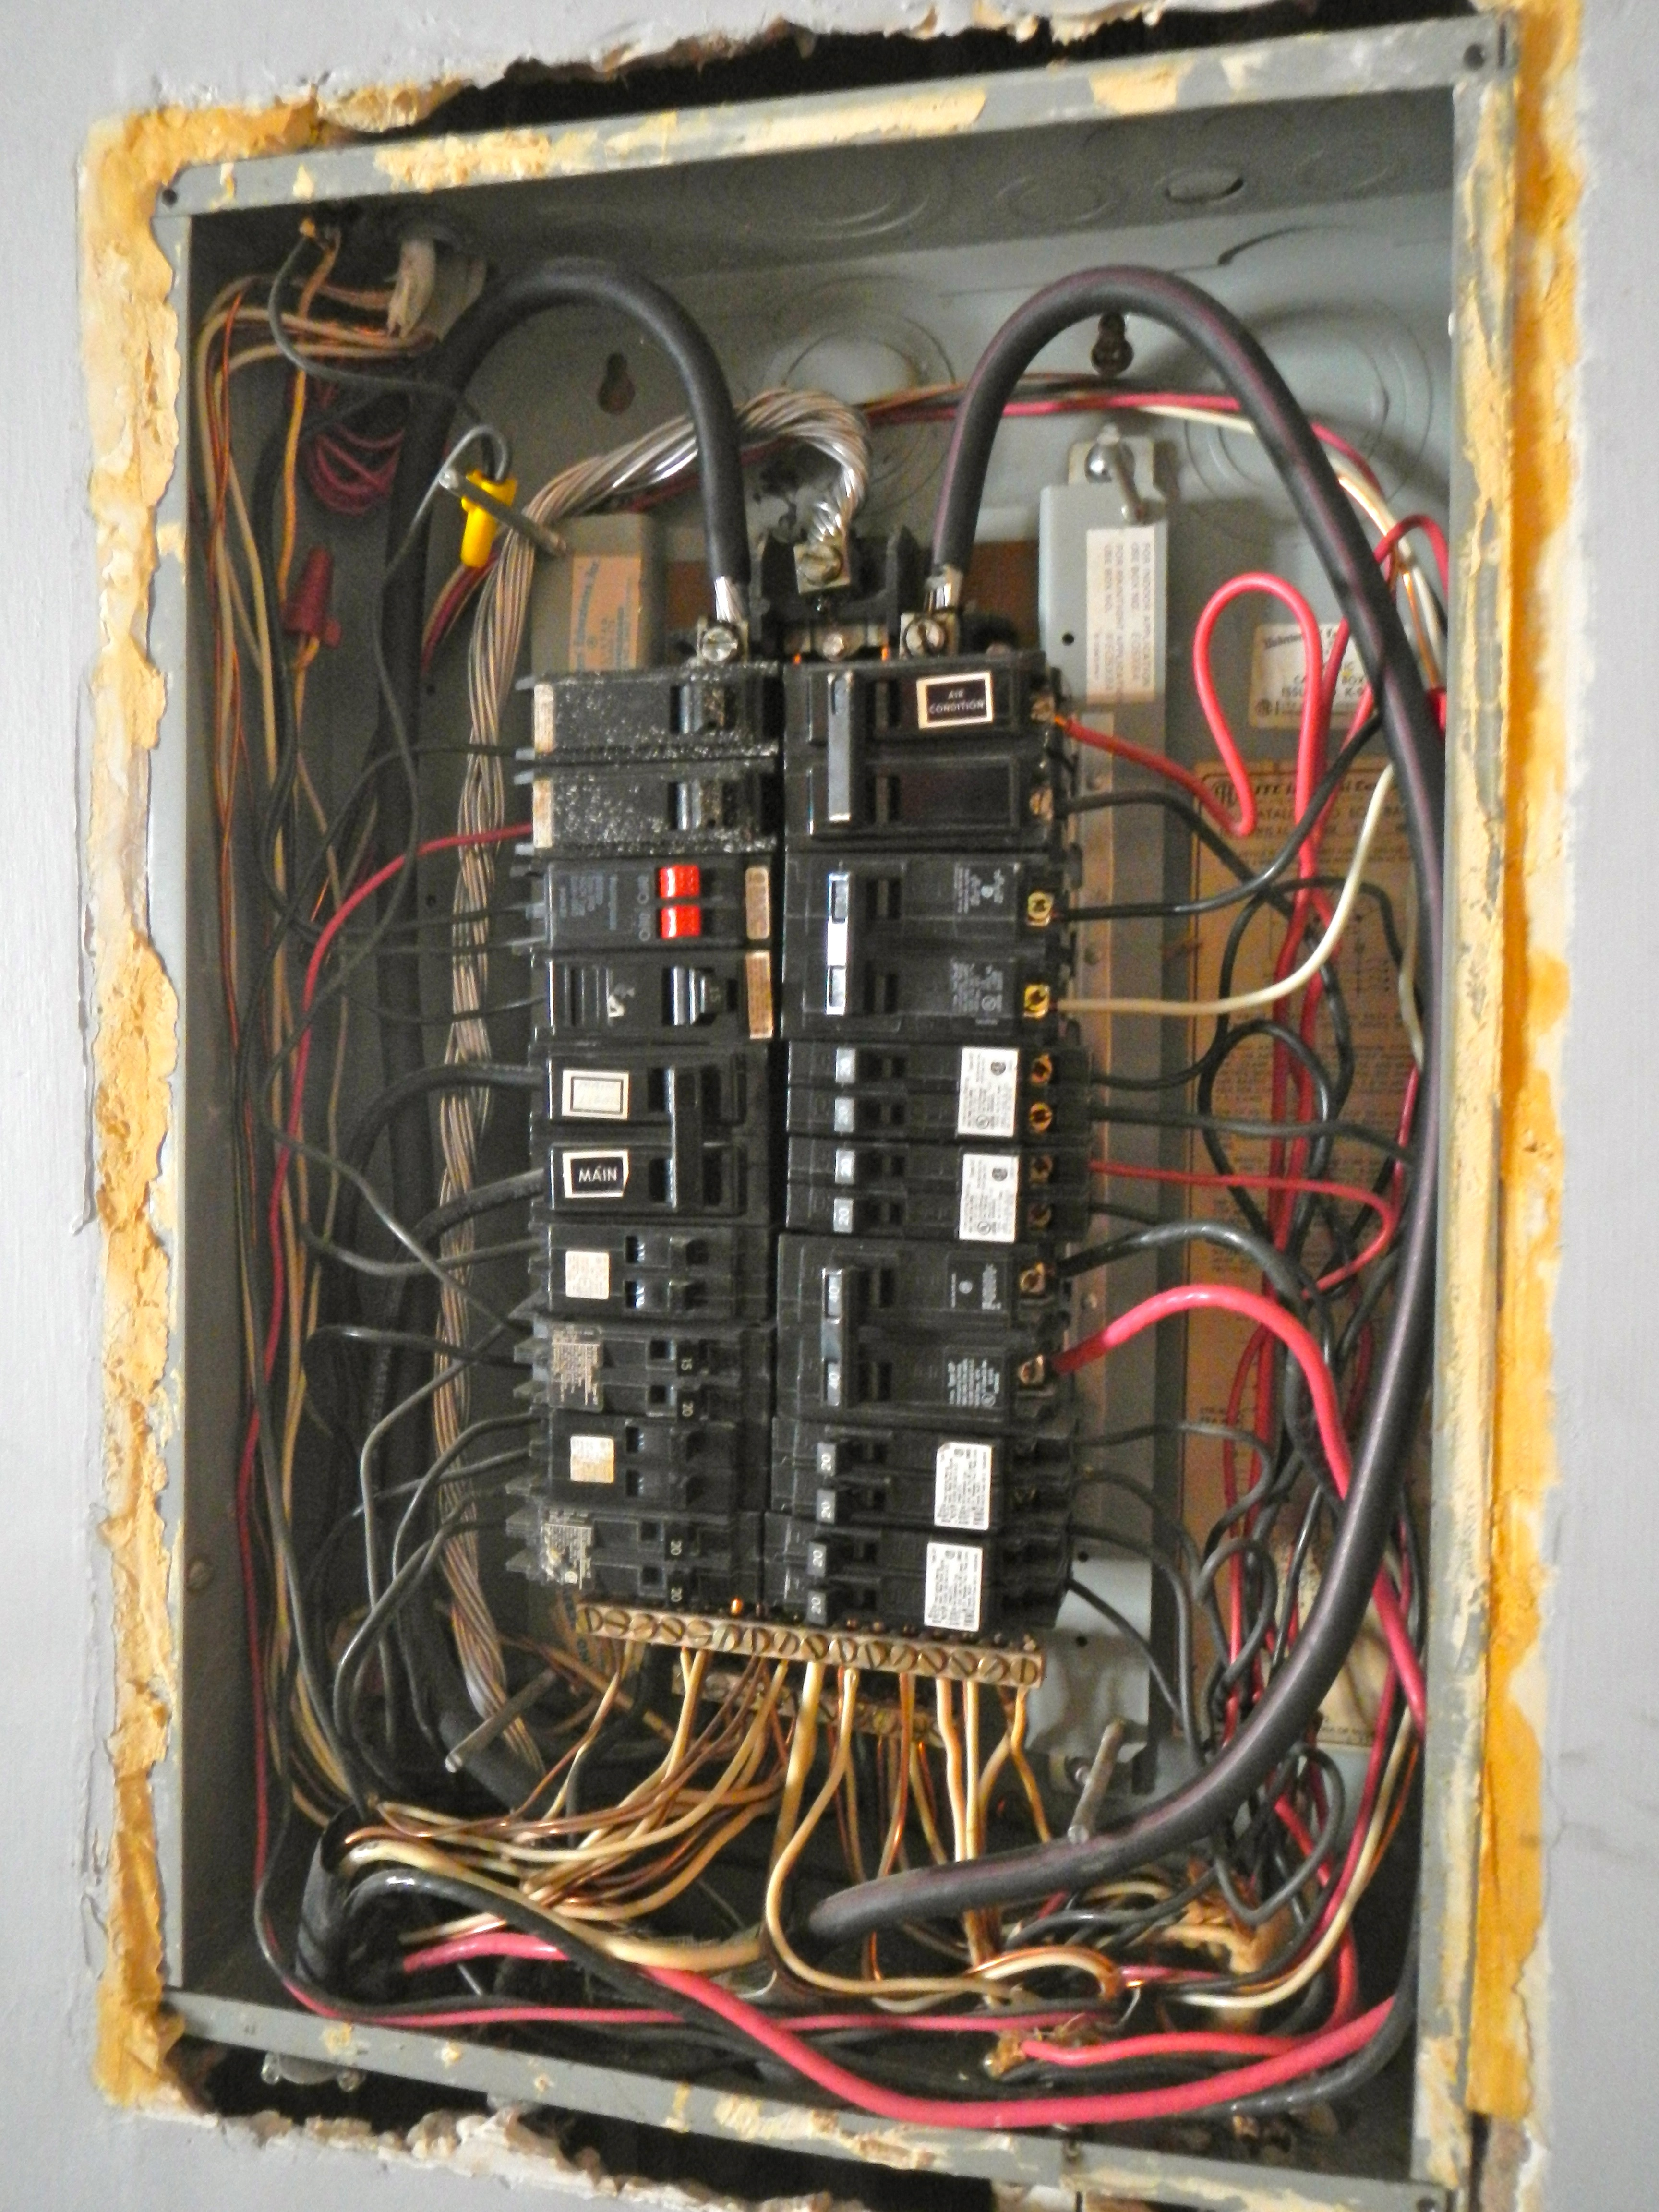 Maxed-out electrical panels are one of the questions you should ask your home inspector about.